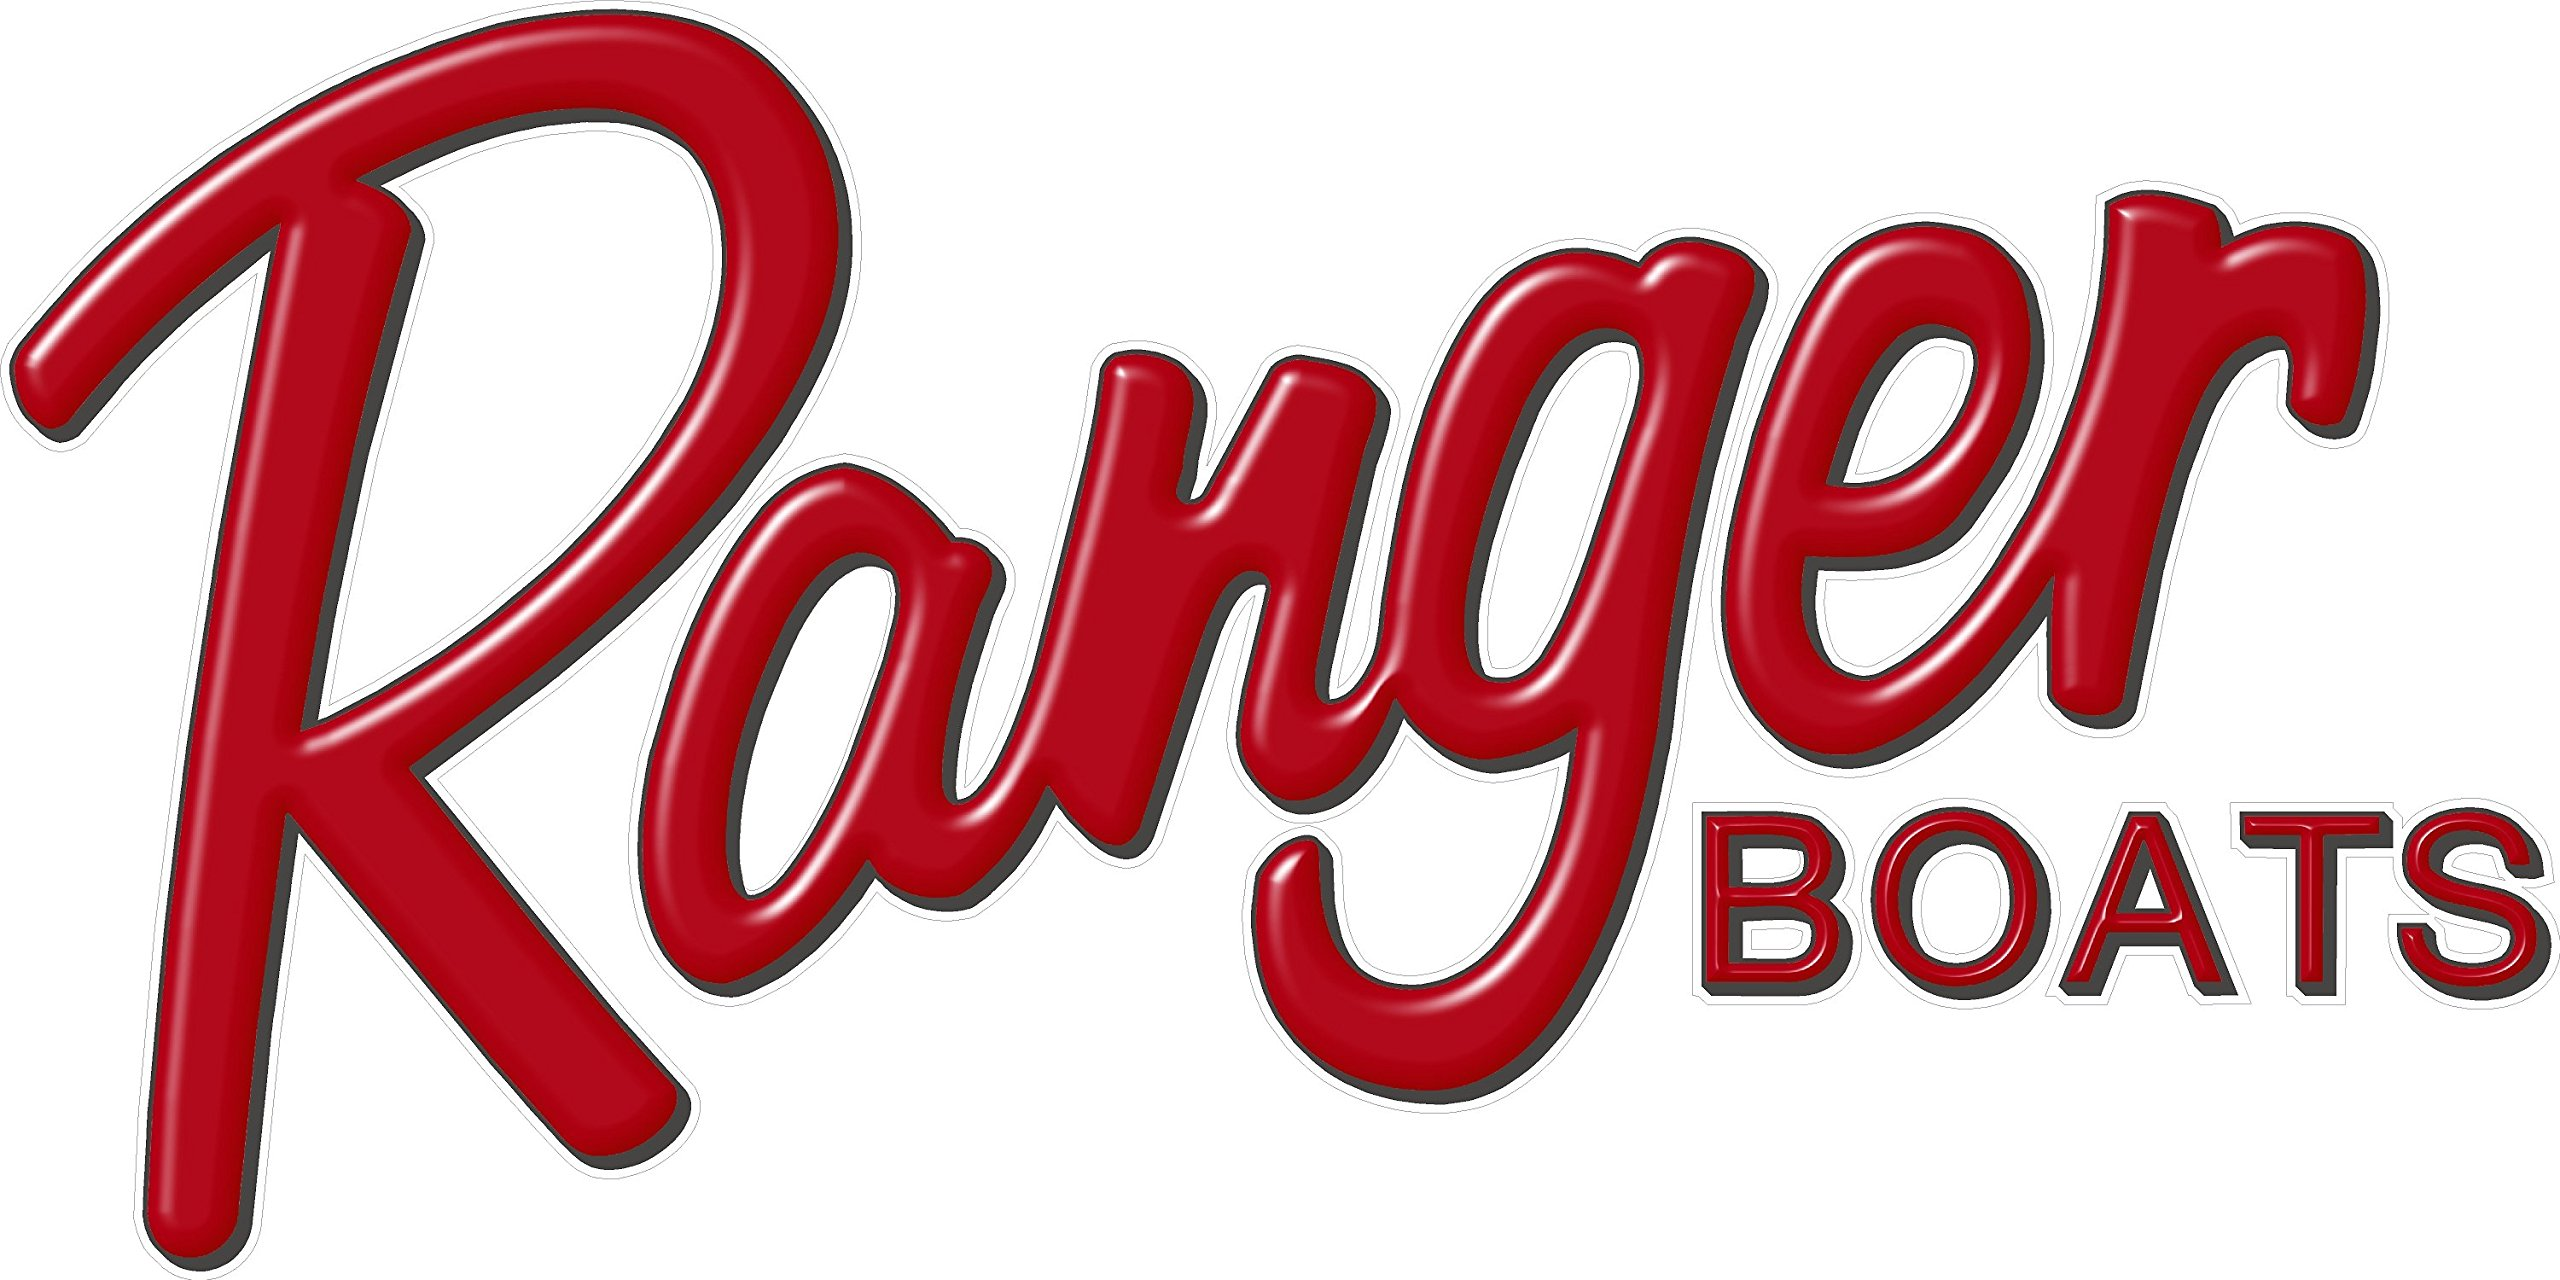 galleon ranger boats red logo decal 6x12quot